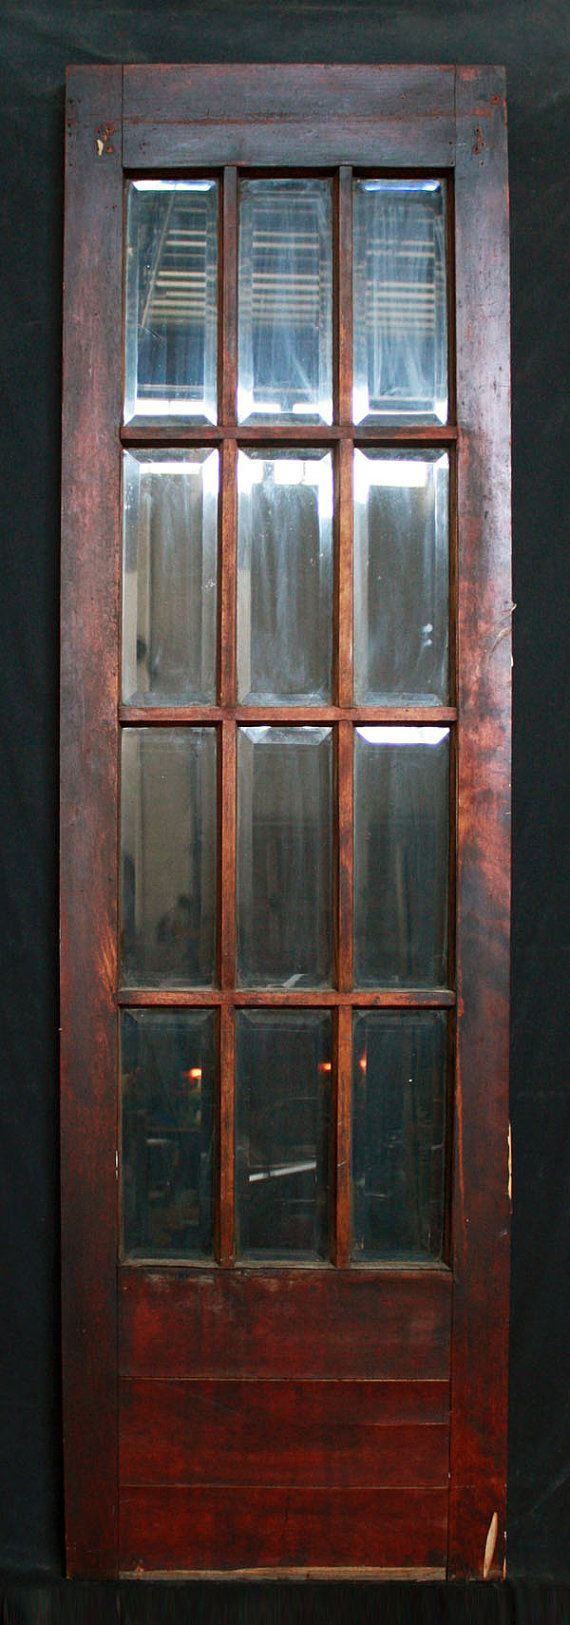 215 best doors images on pinterest architectural salvage pine 24x 84 antique arts crafts interior french by pennantiquerestore rubansaba